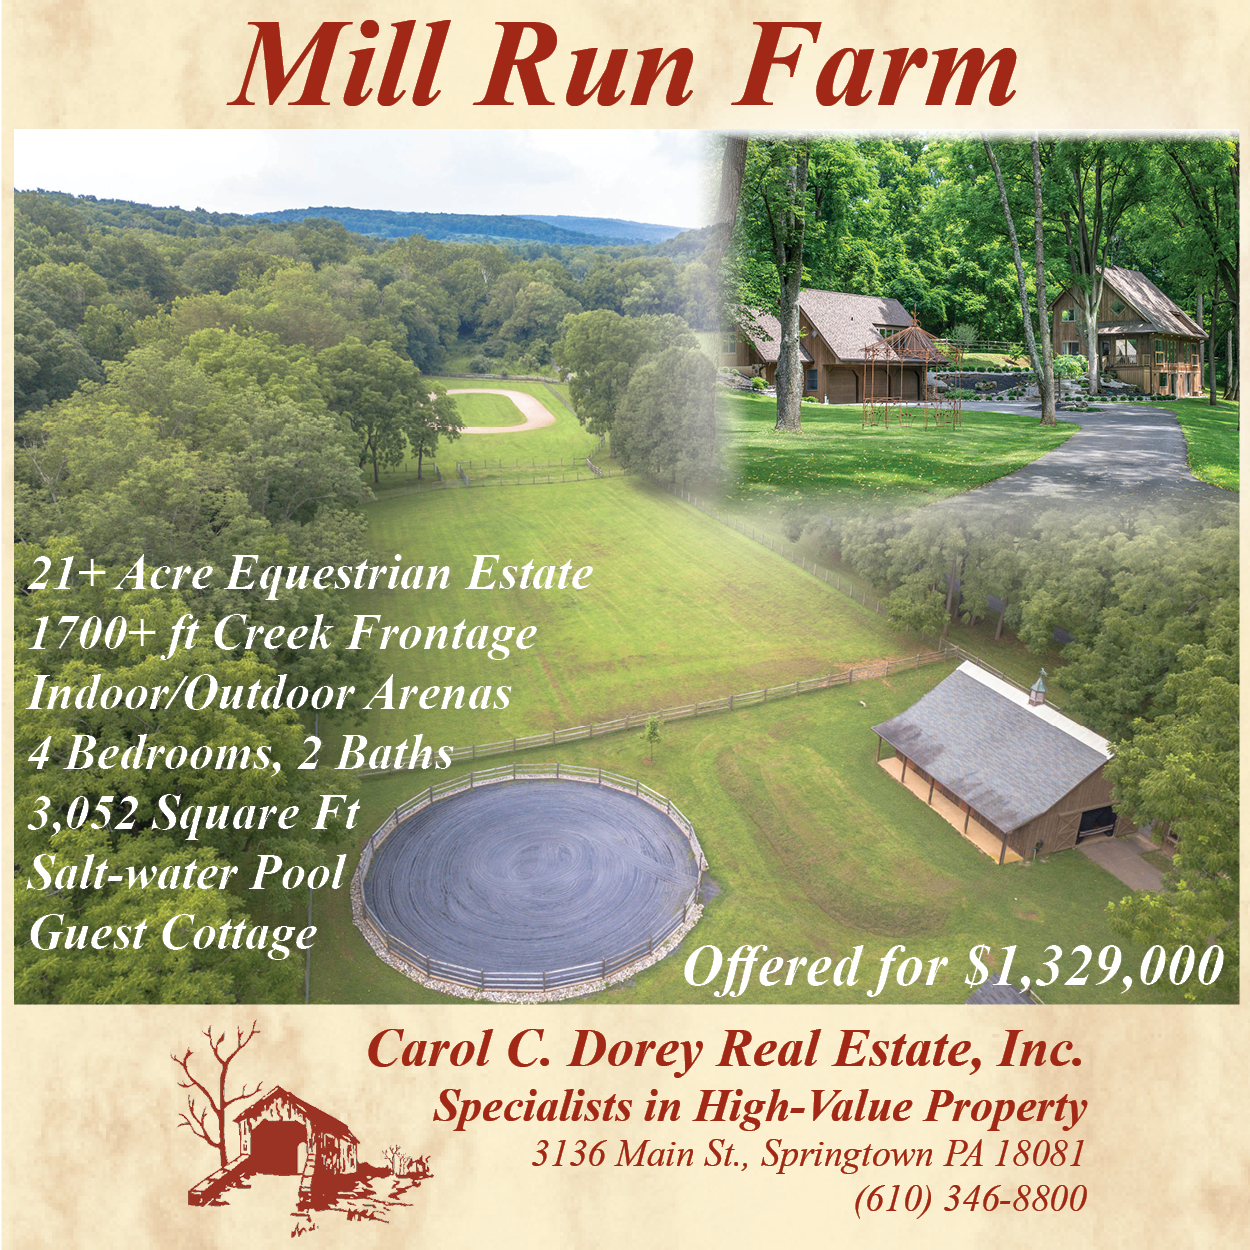 Mill Run Farm - Dorey